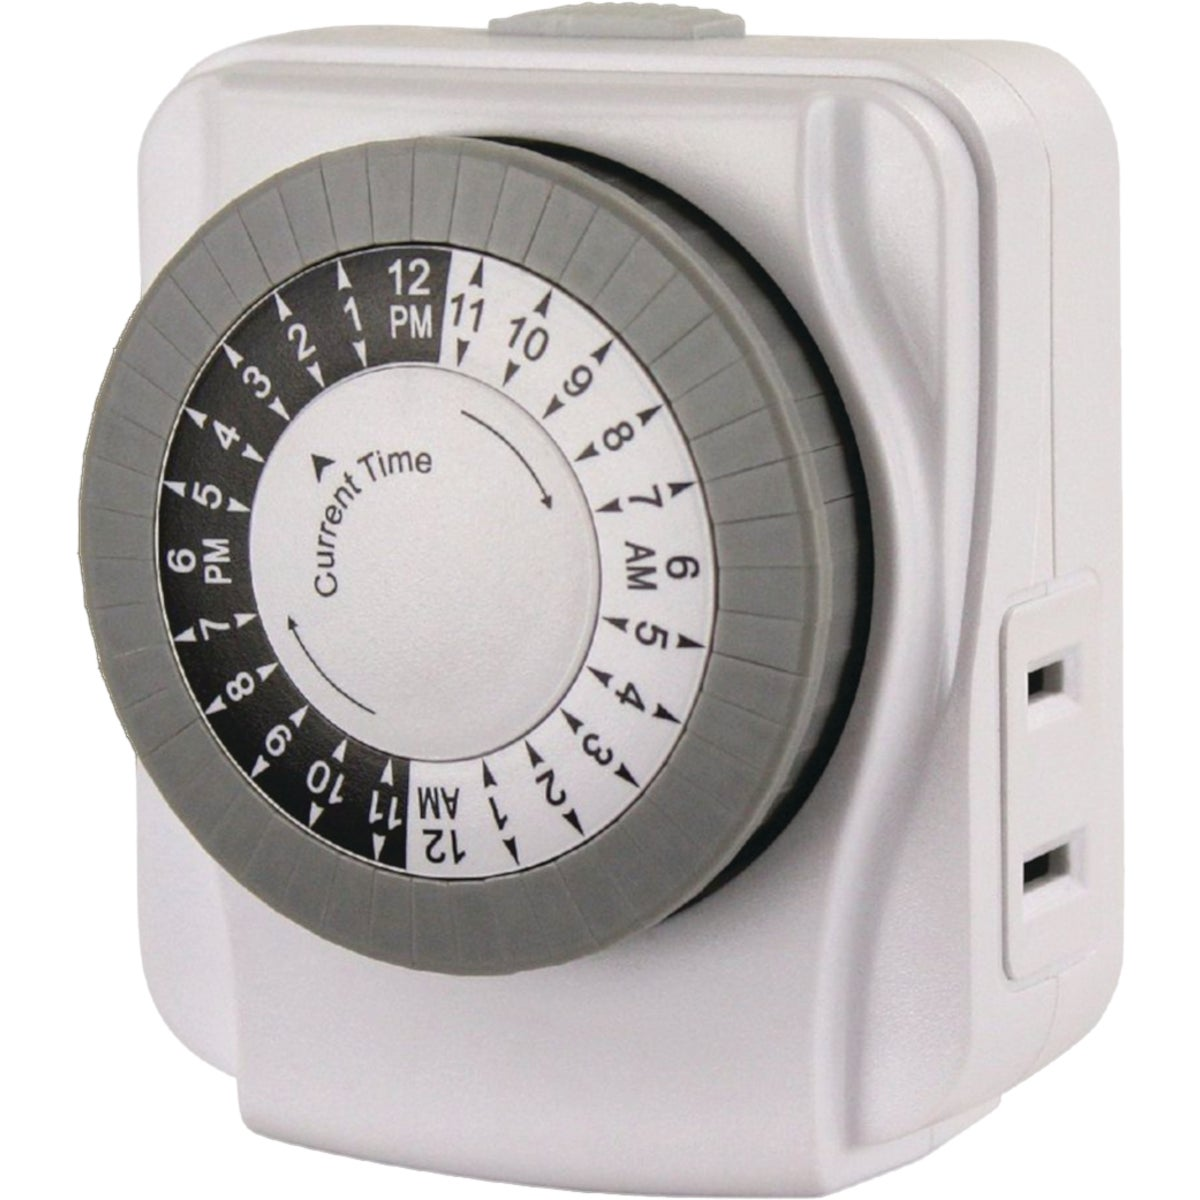 24 HOUR MECHANICAL TIMER - 50000 by Woods Wire Coleman